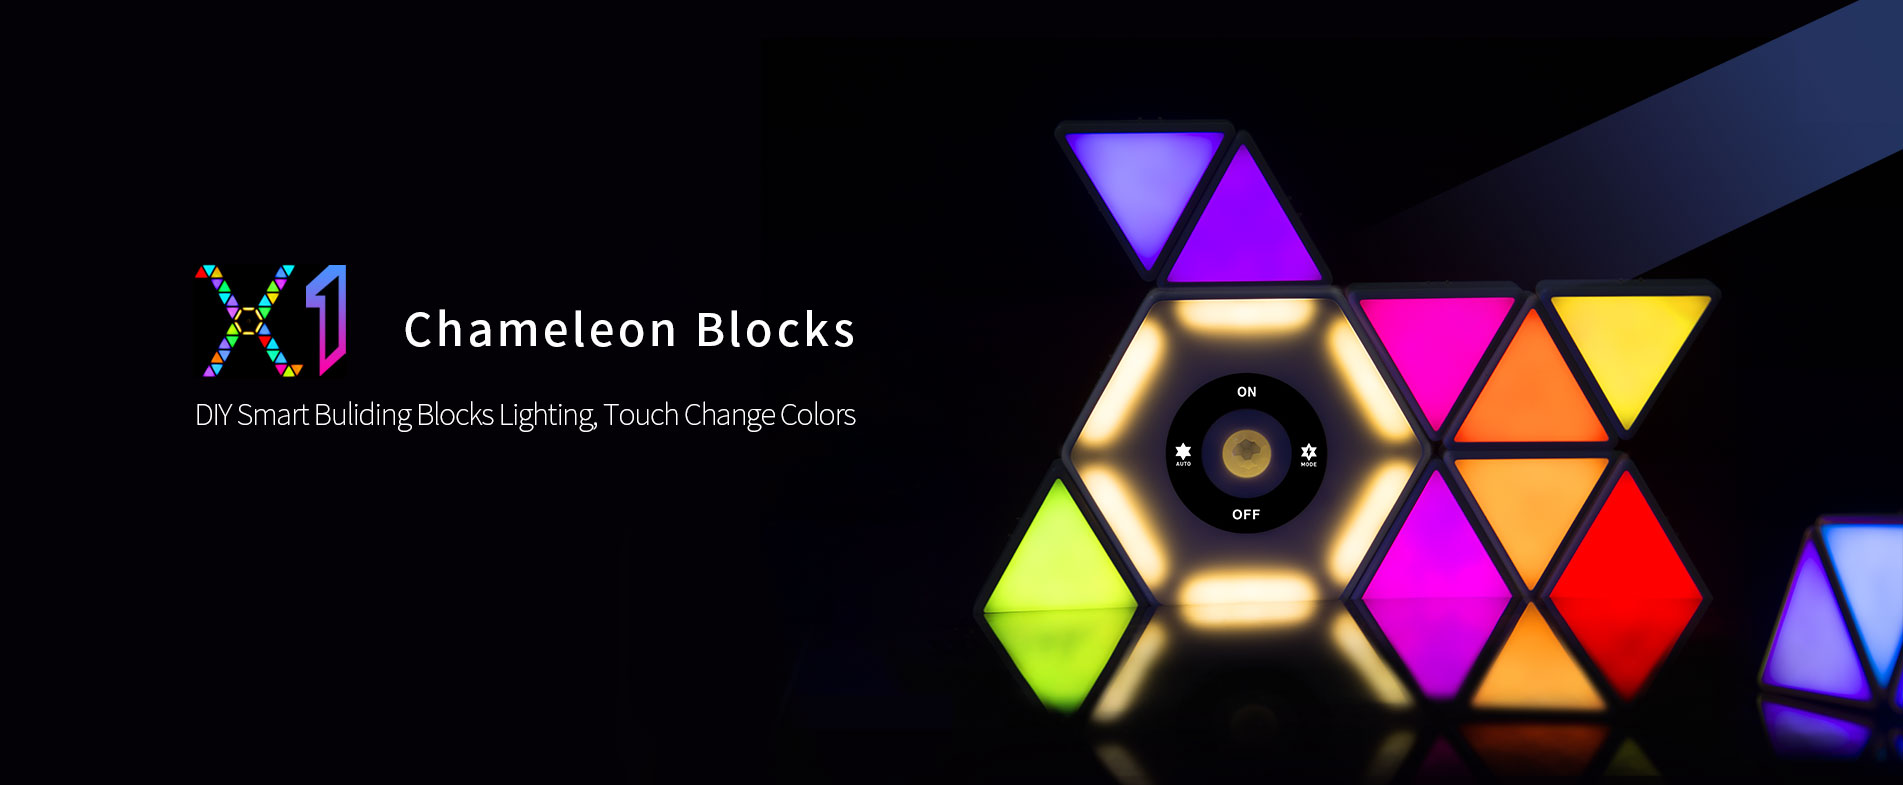 Chameleon Blocks 1 Smart Lighting Magnetic Blocks Bedroom Light